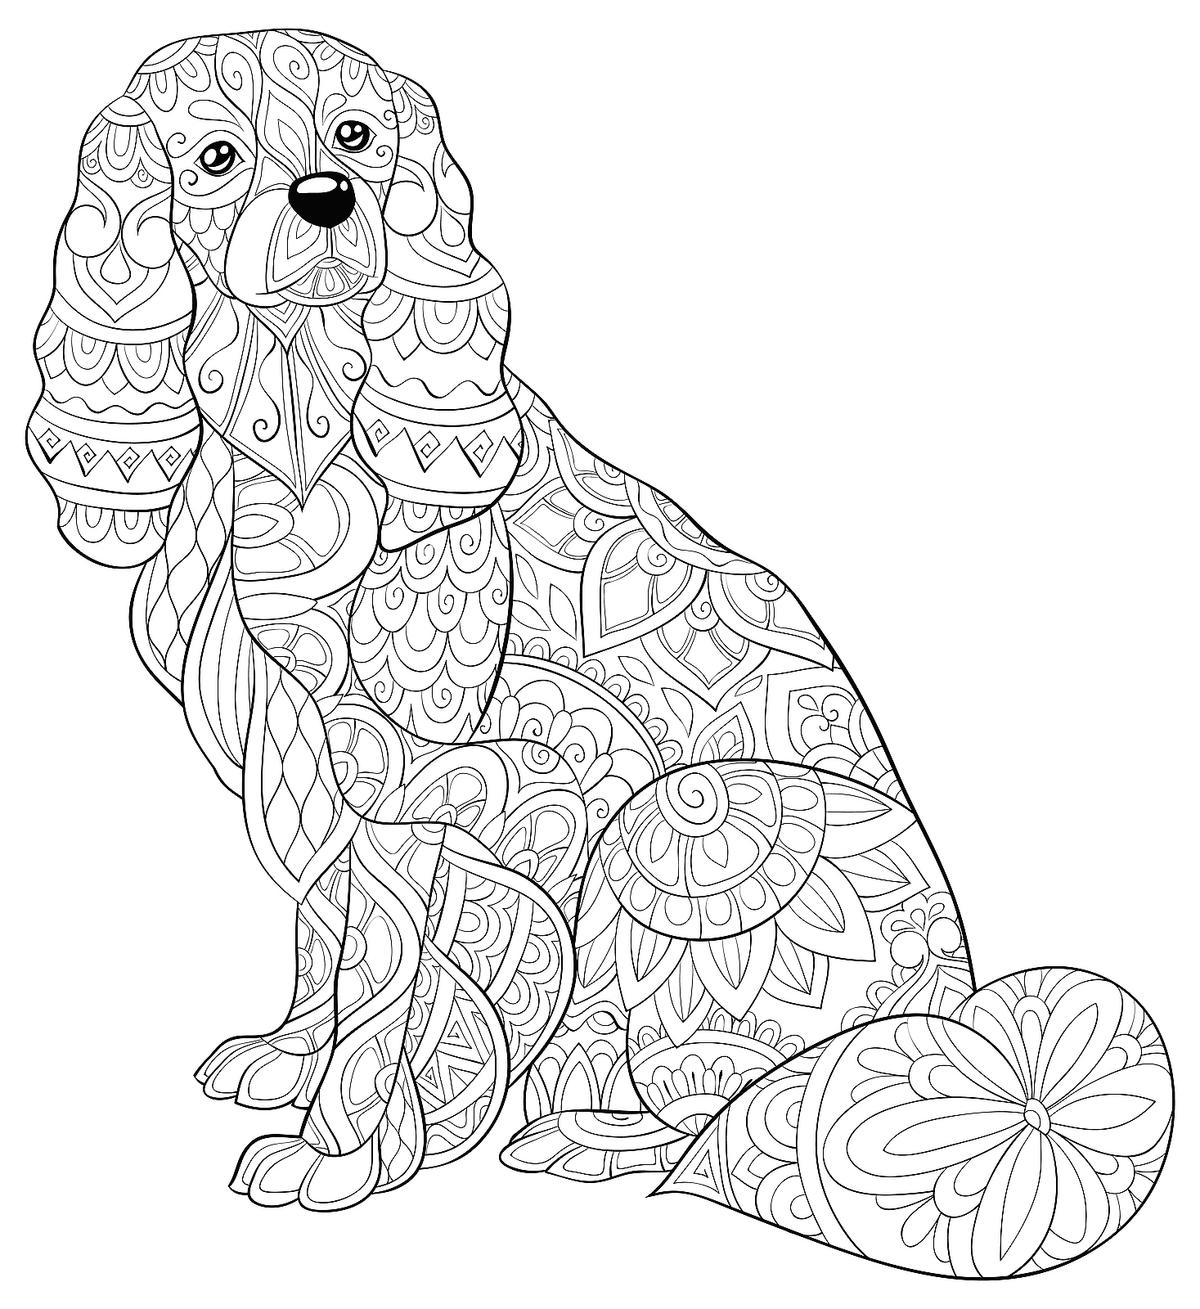 colouring dog print download draw your own puppy coloring pages dog colouring 1 1